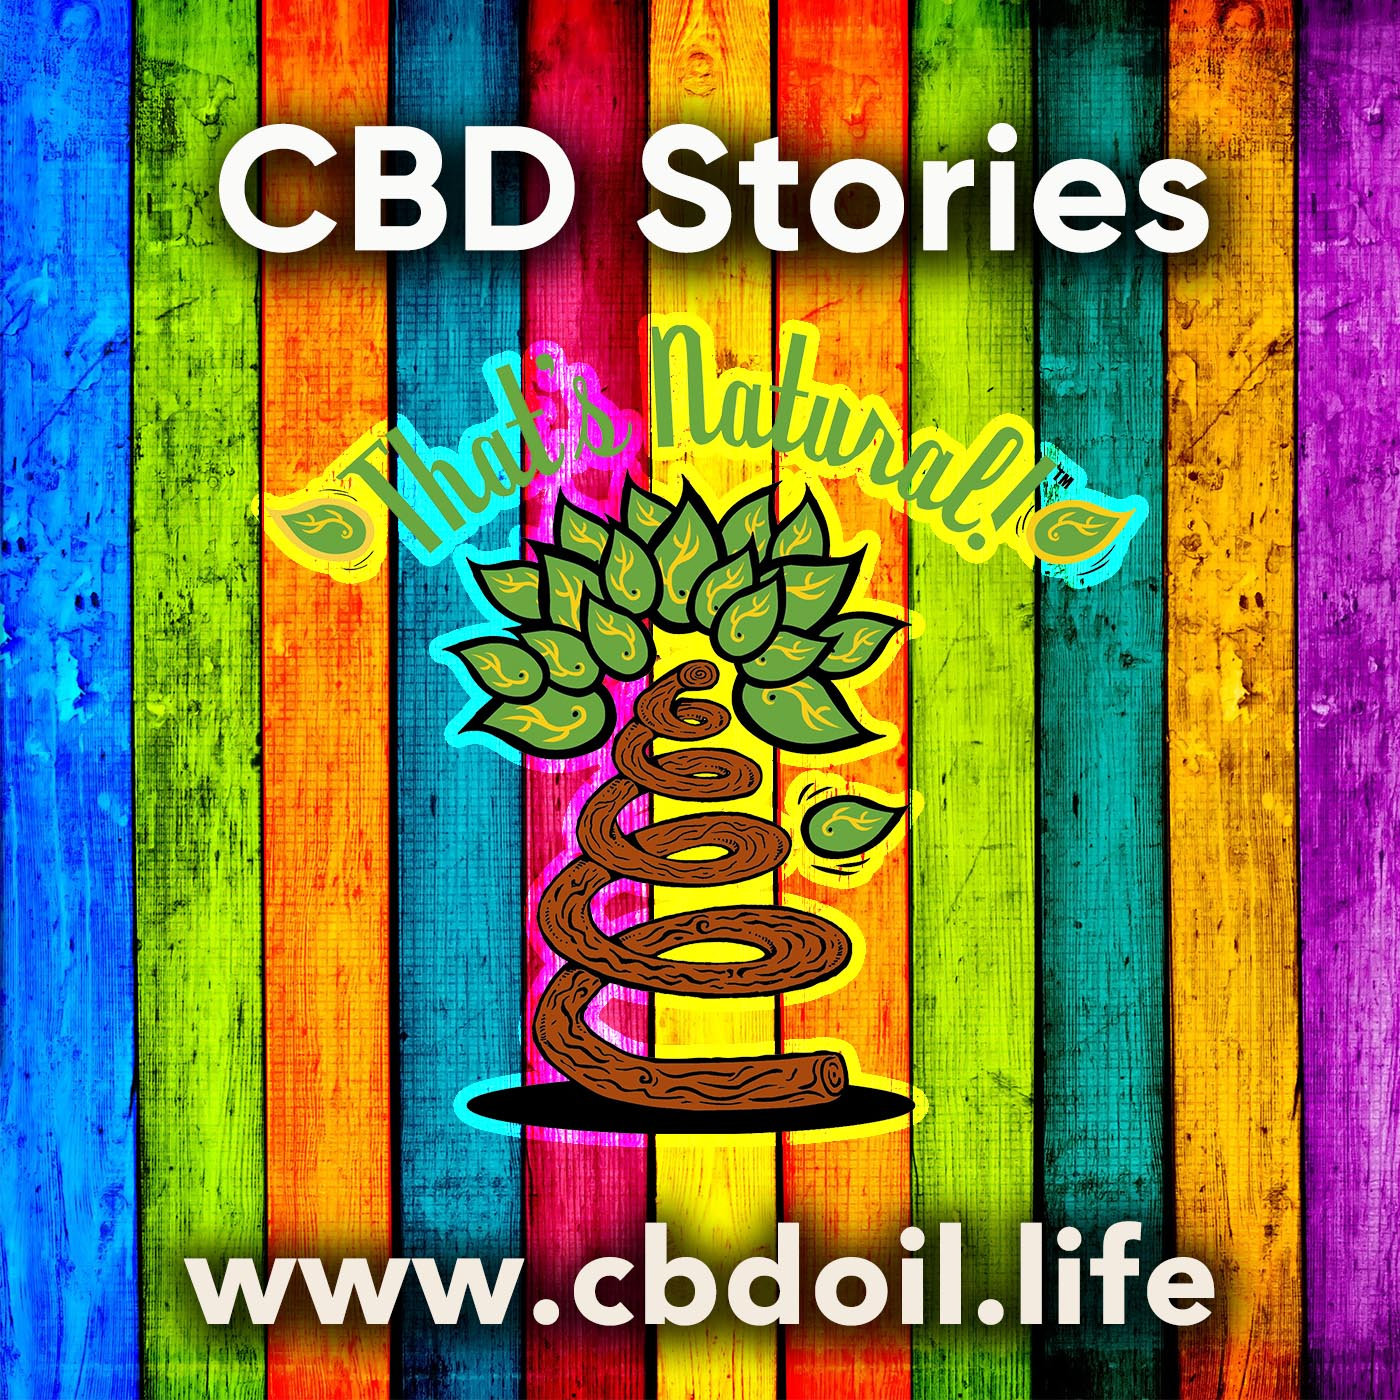 CBD Stories - News from Thats Natural, V1